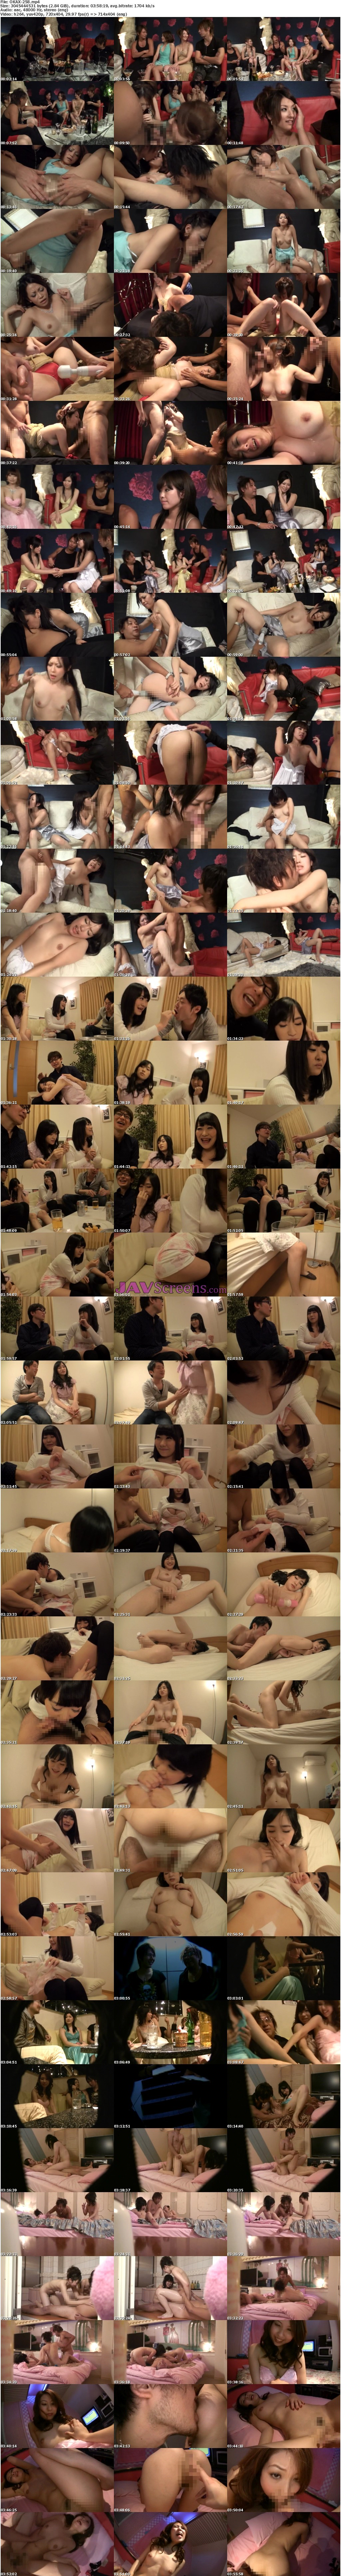 OKAX-258.jpg - JAV Screenshot